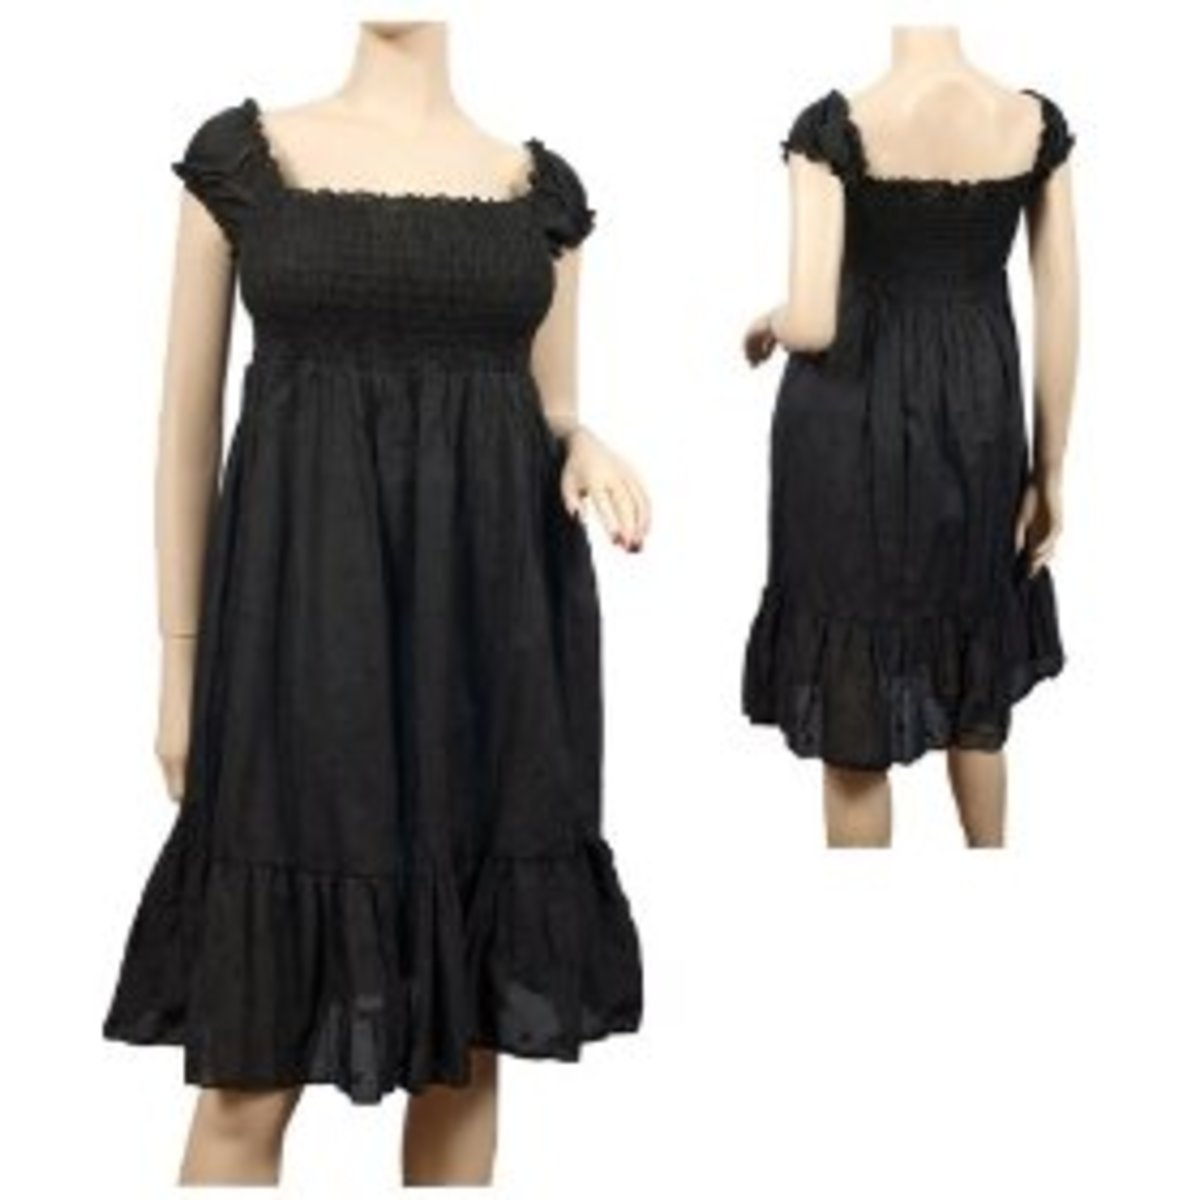 This a a nice dress for apple figures!